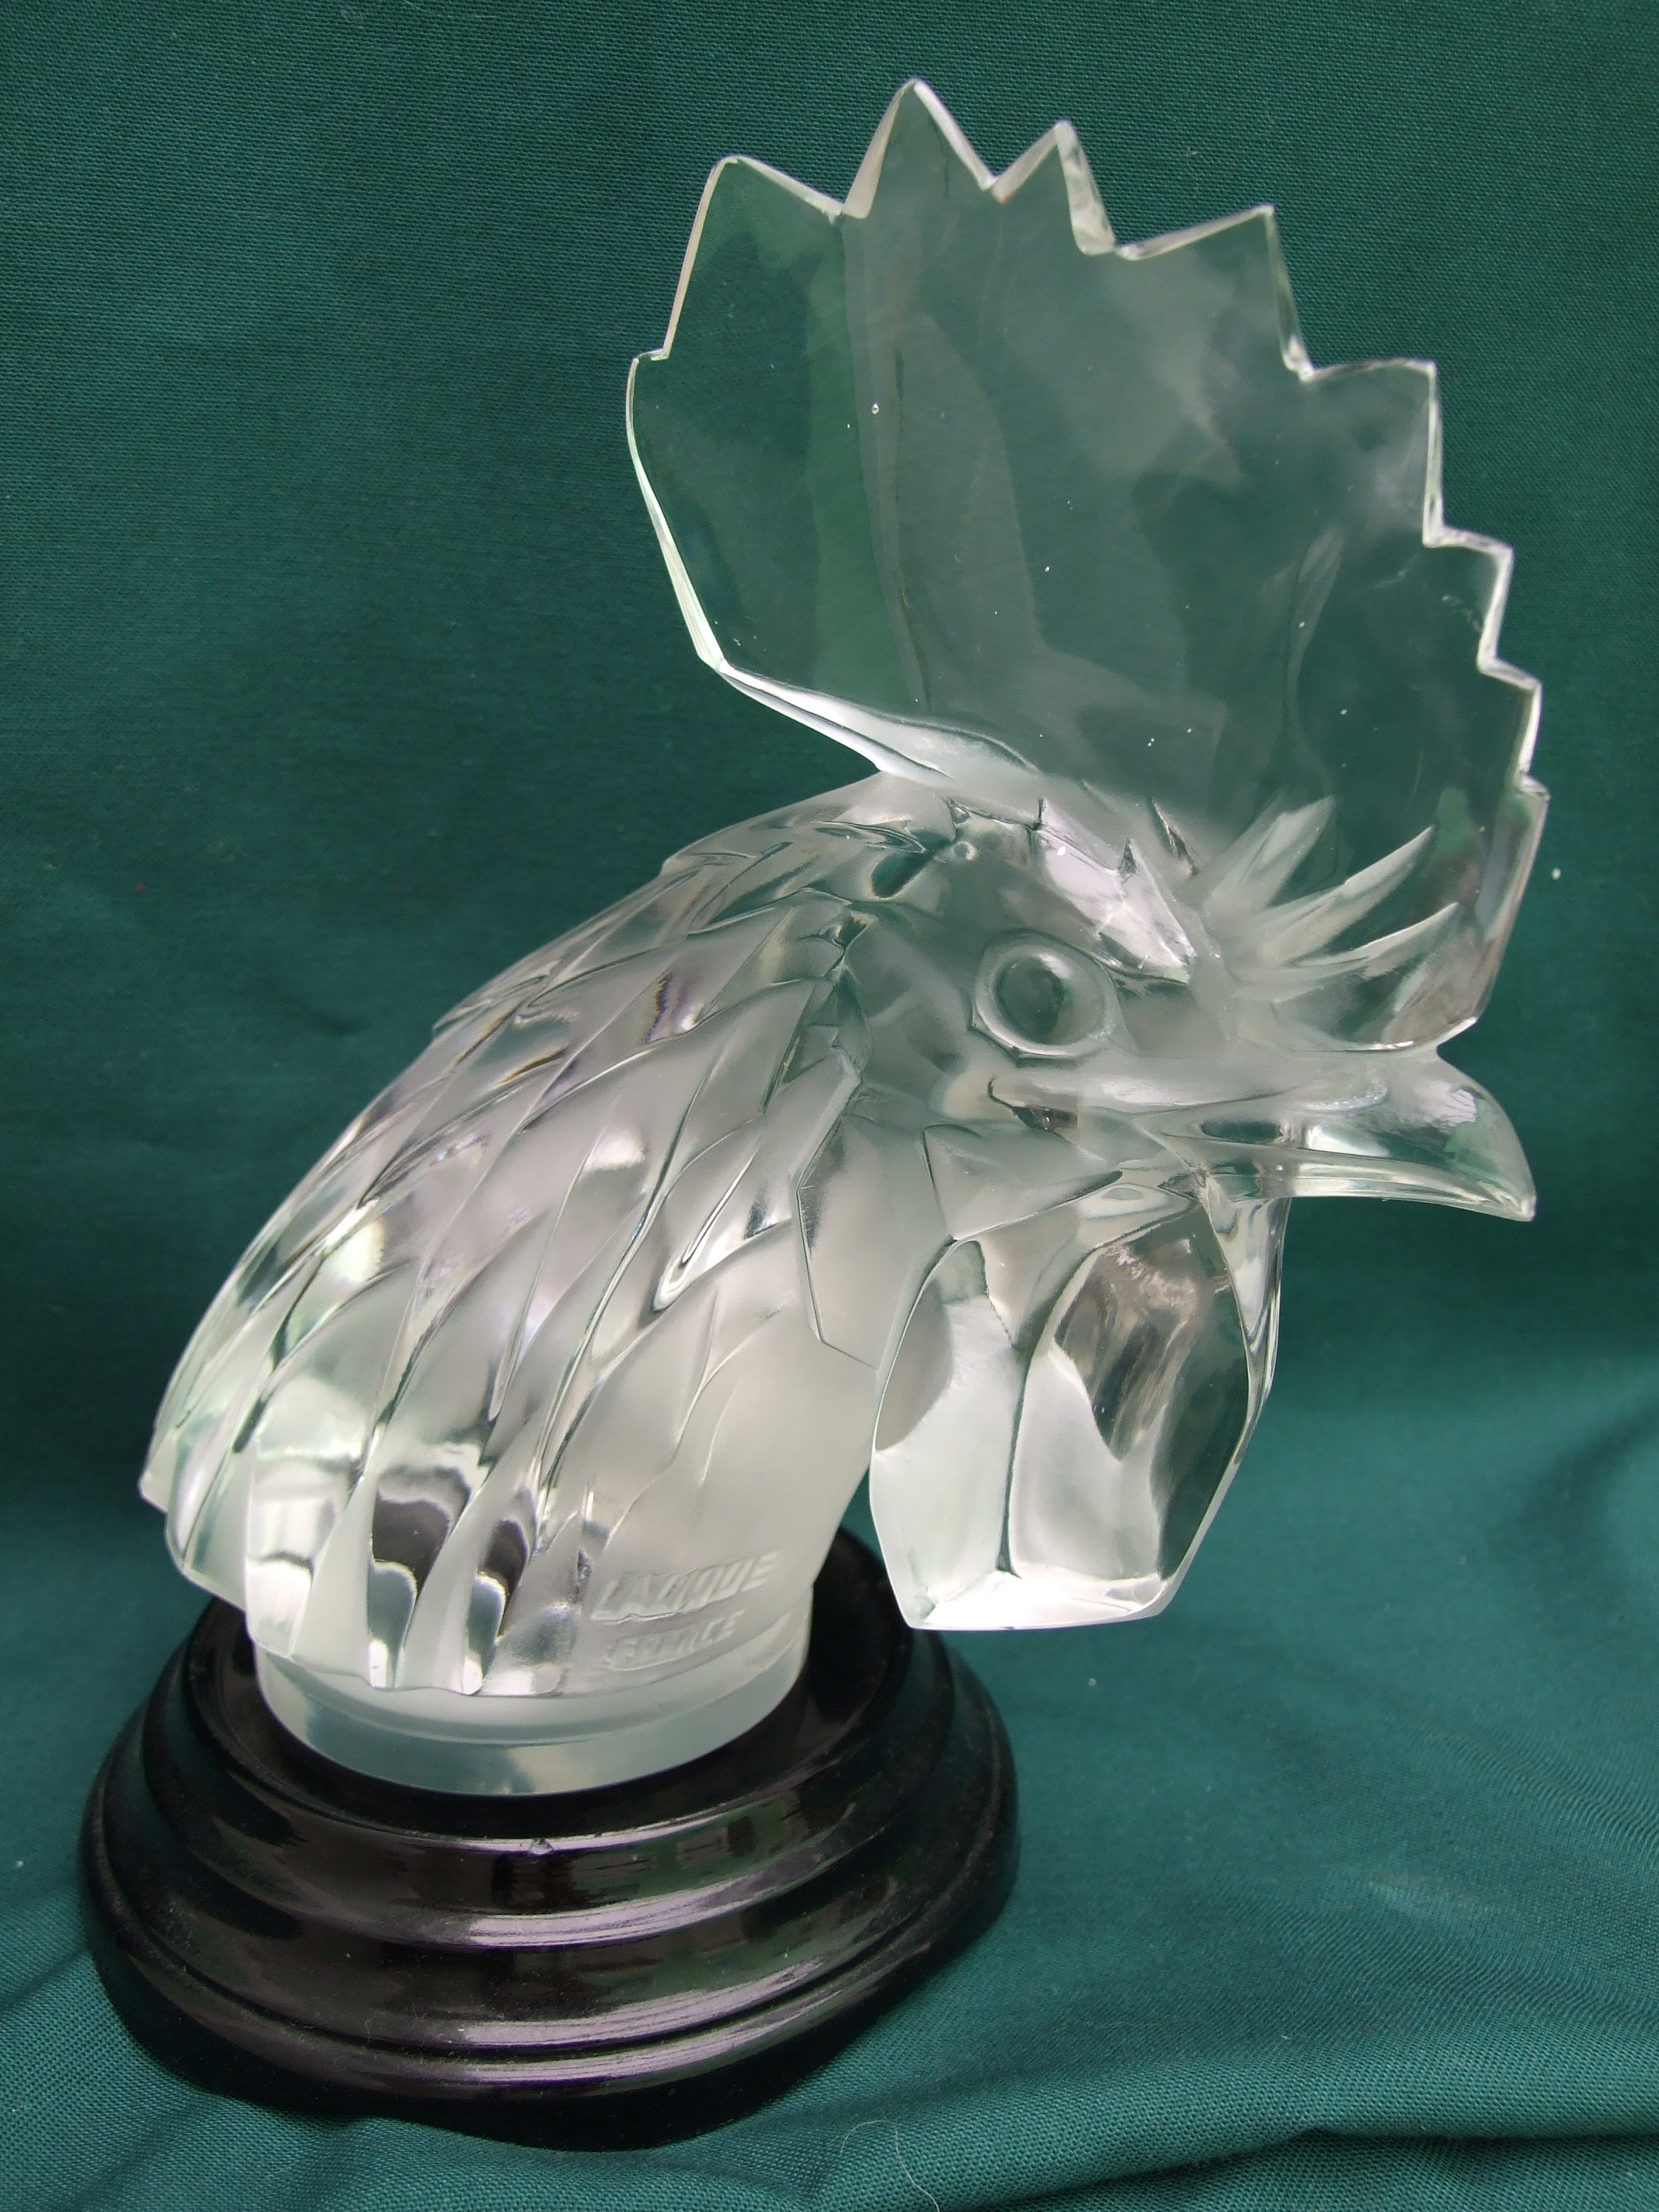 Lalique hood ornaments - We Have A Selection Of Bouchons De Radiateur By Lalique From 500 Please See Our Websites For The Inter War Period Rene Lalique At Www Laliquemascots Co